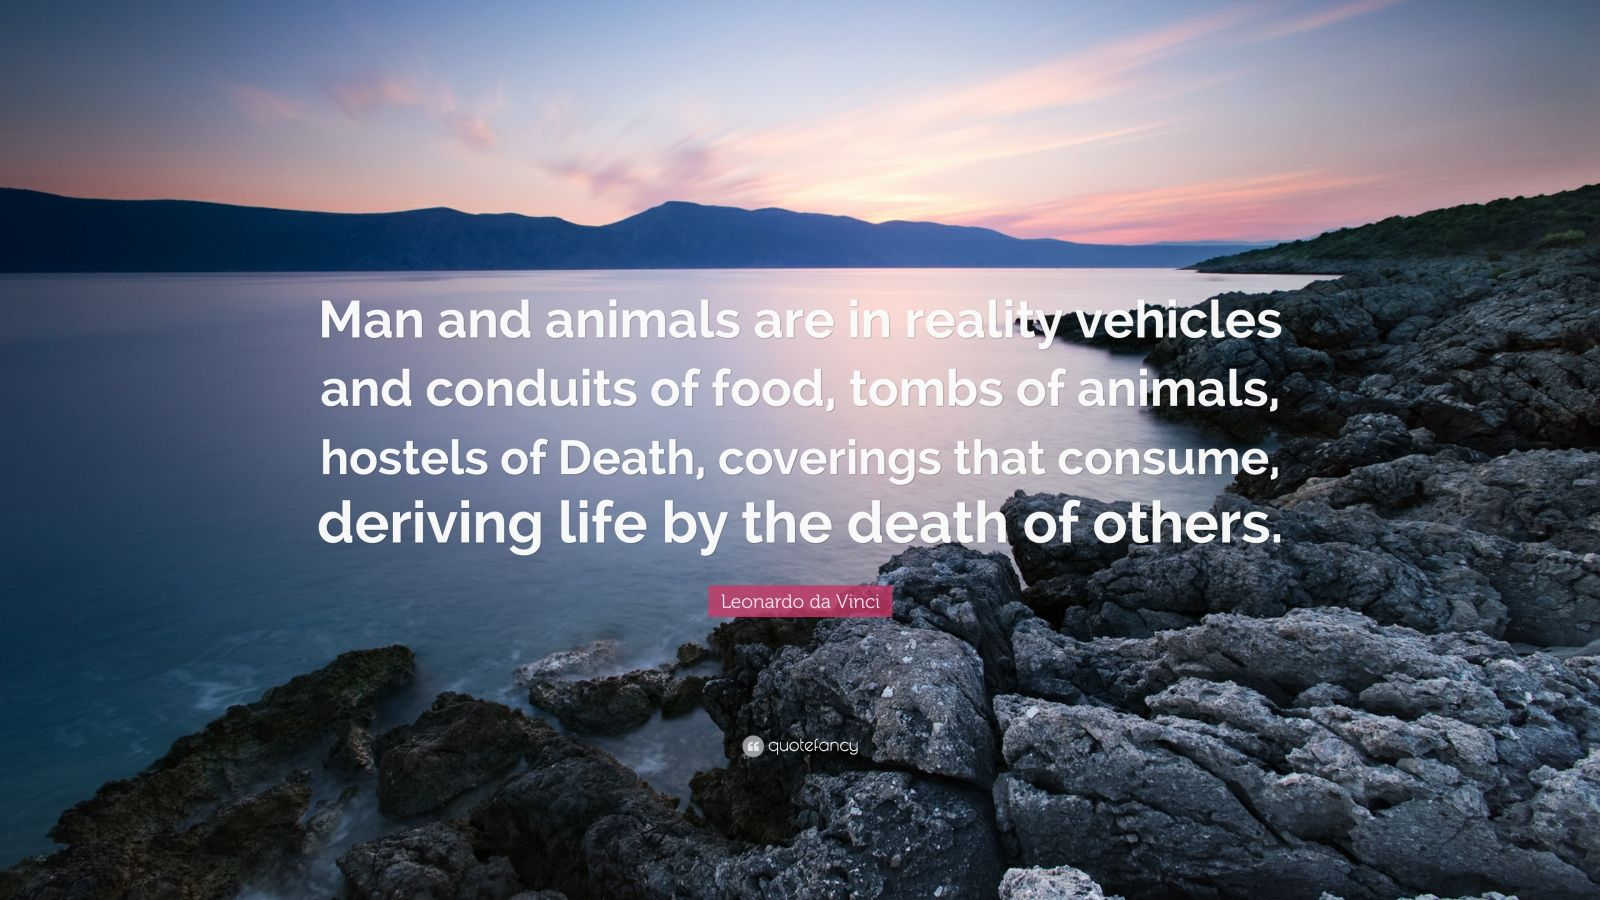 """Leonardo da Vinci Quote: """"Man and animals are in reality vehicles and conduits of food, tombs of animals, hostels of Death, coverings that consume, deriving life by the death of others."""""""